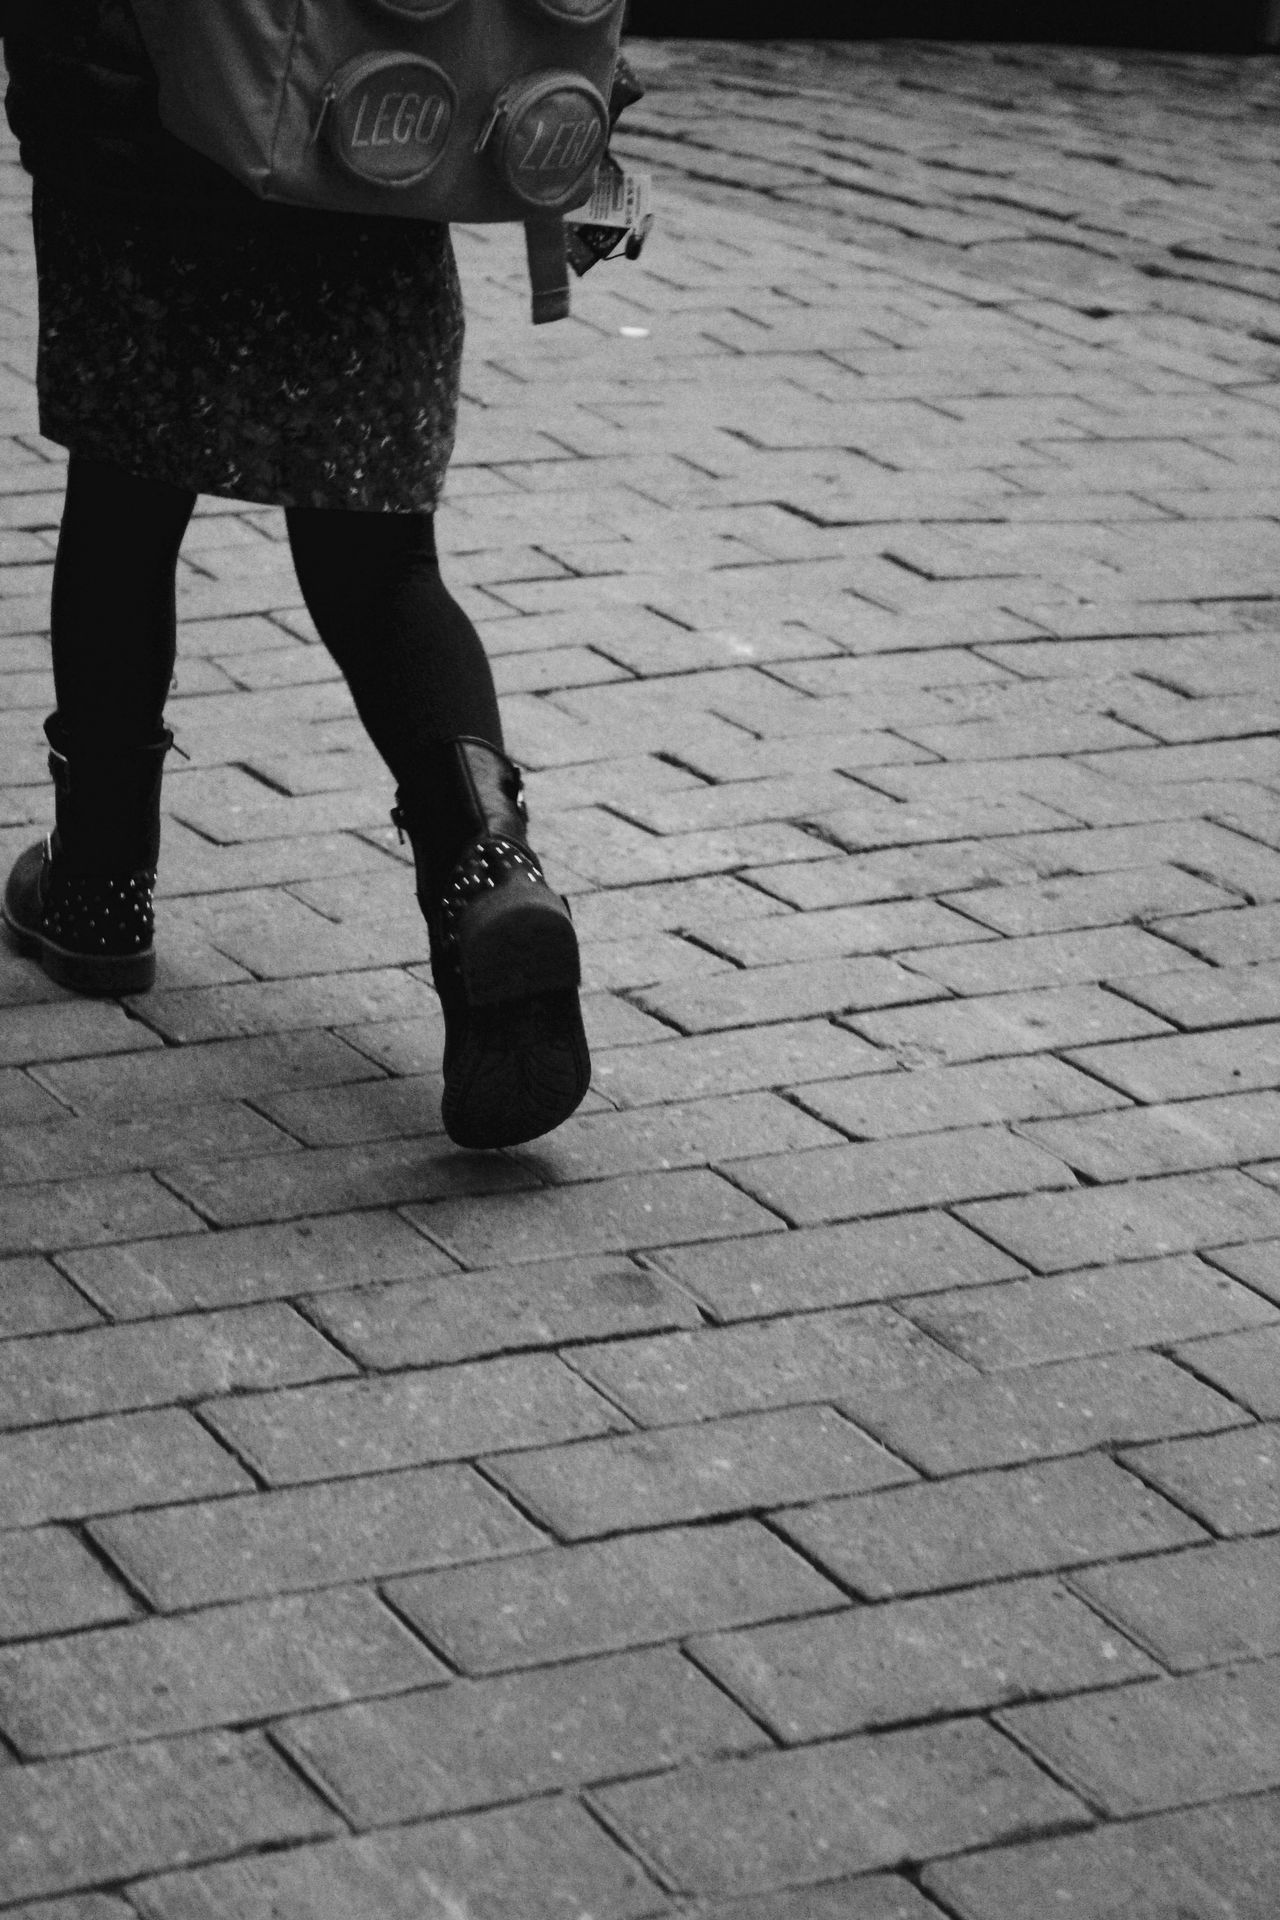 Backpack Bag Casual Clothing City Life City Street Day EyeEm Gallery Going To School Lifestyles Low Section Monochrome Photography Old Town Outdoors Paving Stone Person Shadow Shoes Stone Material Walking